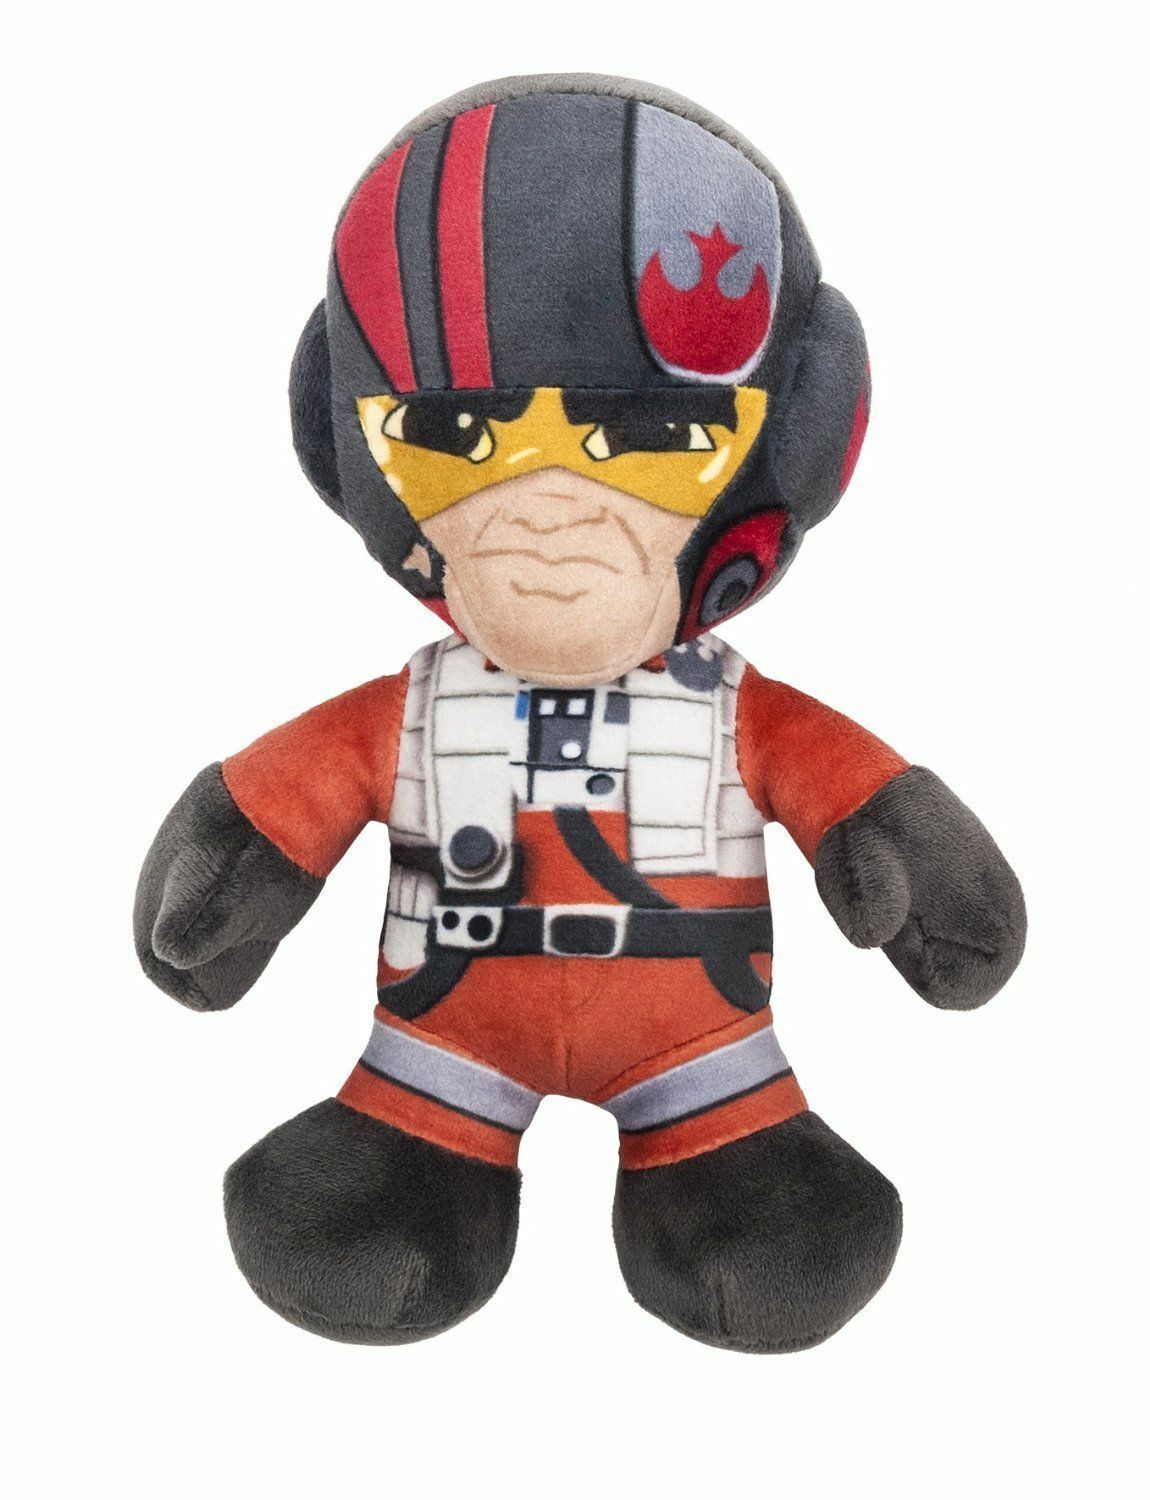 Star Wars Episode 7th - Secondary hero battler 17 cm plush Joy Toy Italy import